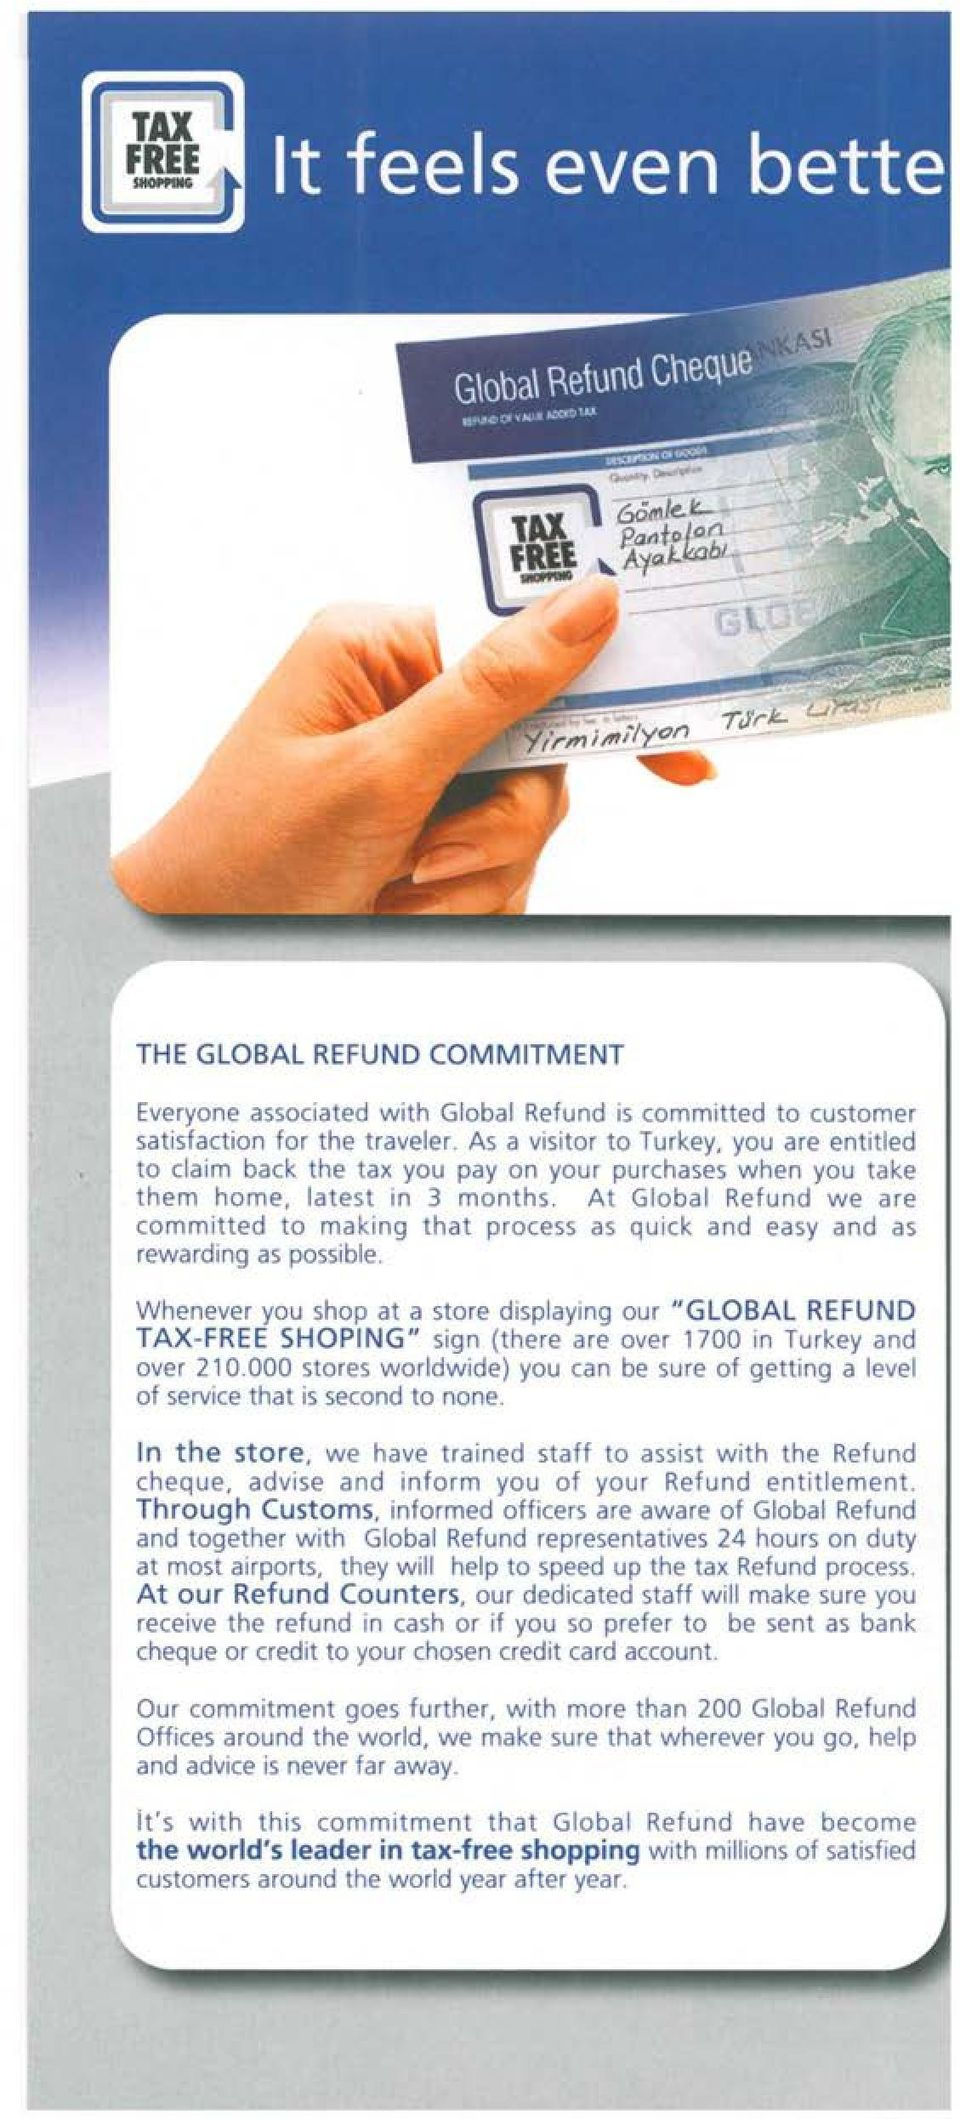 At Global Refund we are committed to ma king that process as quick and easy and as rewarding as possible.